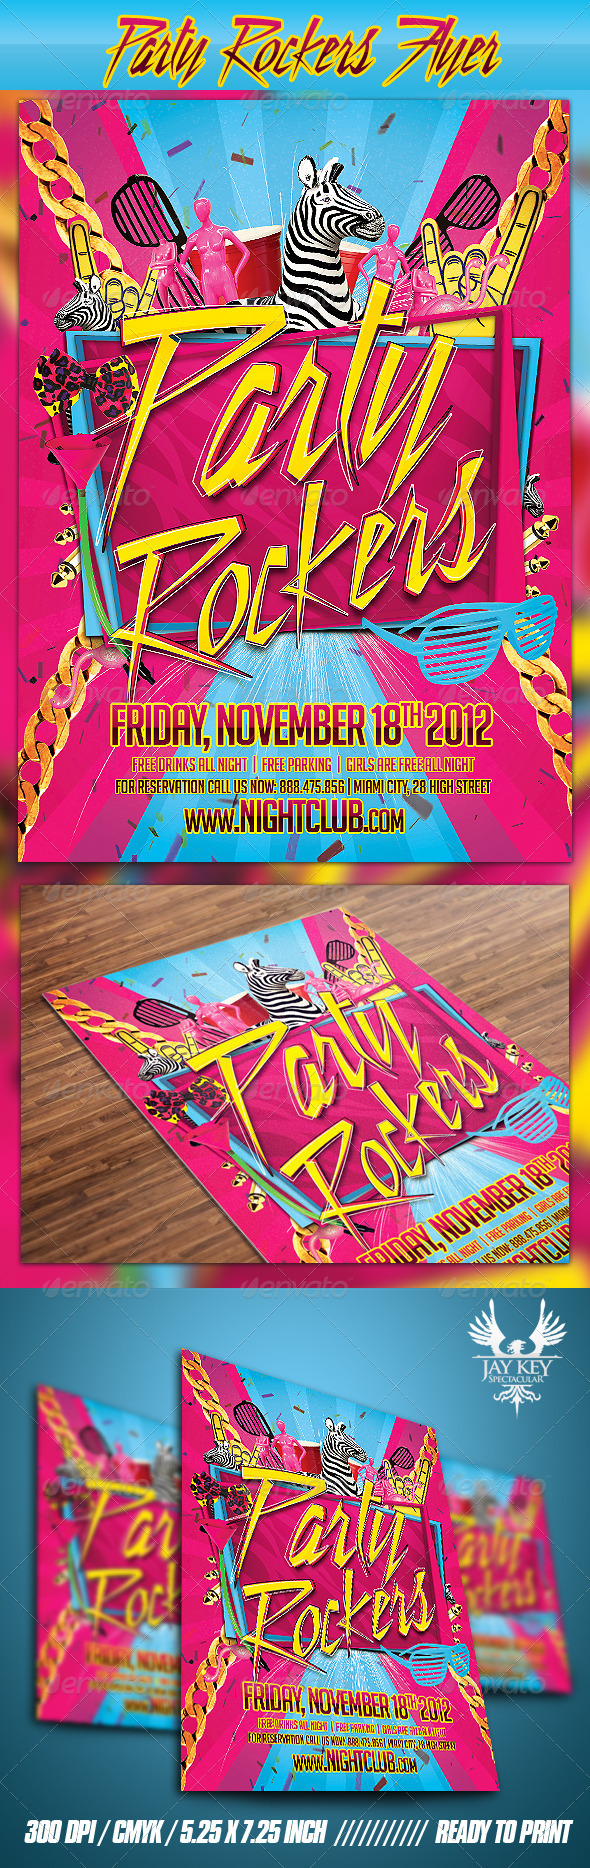 GraphicRiver Party Rockers Flyer 3529636